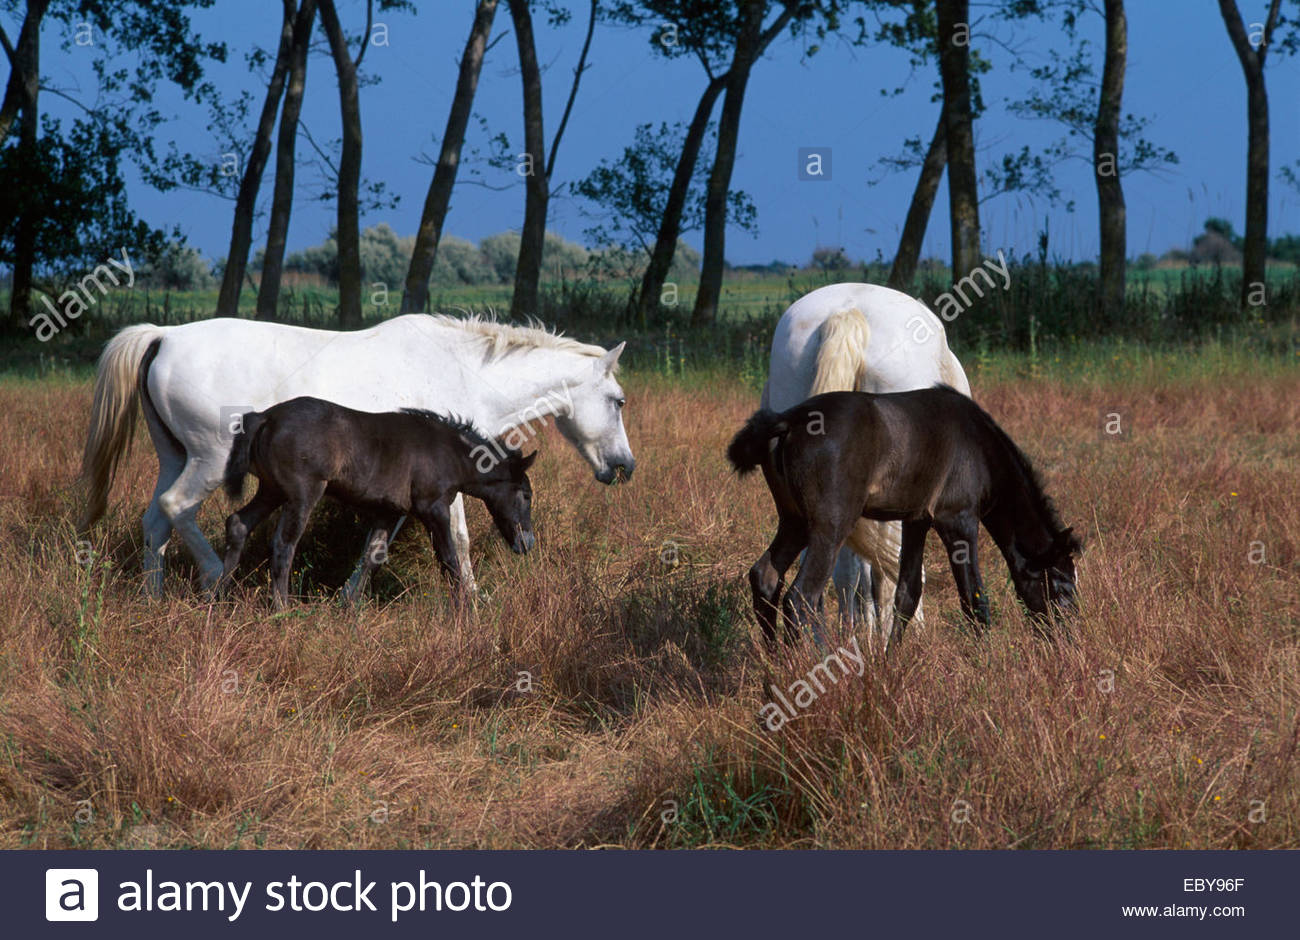 Camargue, Horse and foals - Stock Image